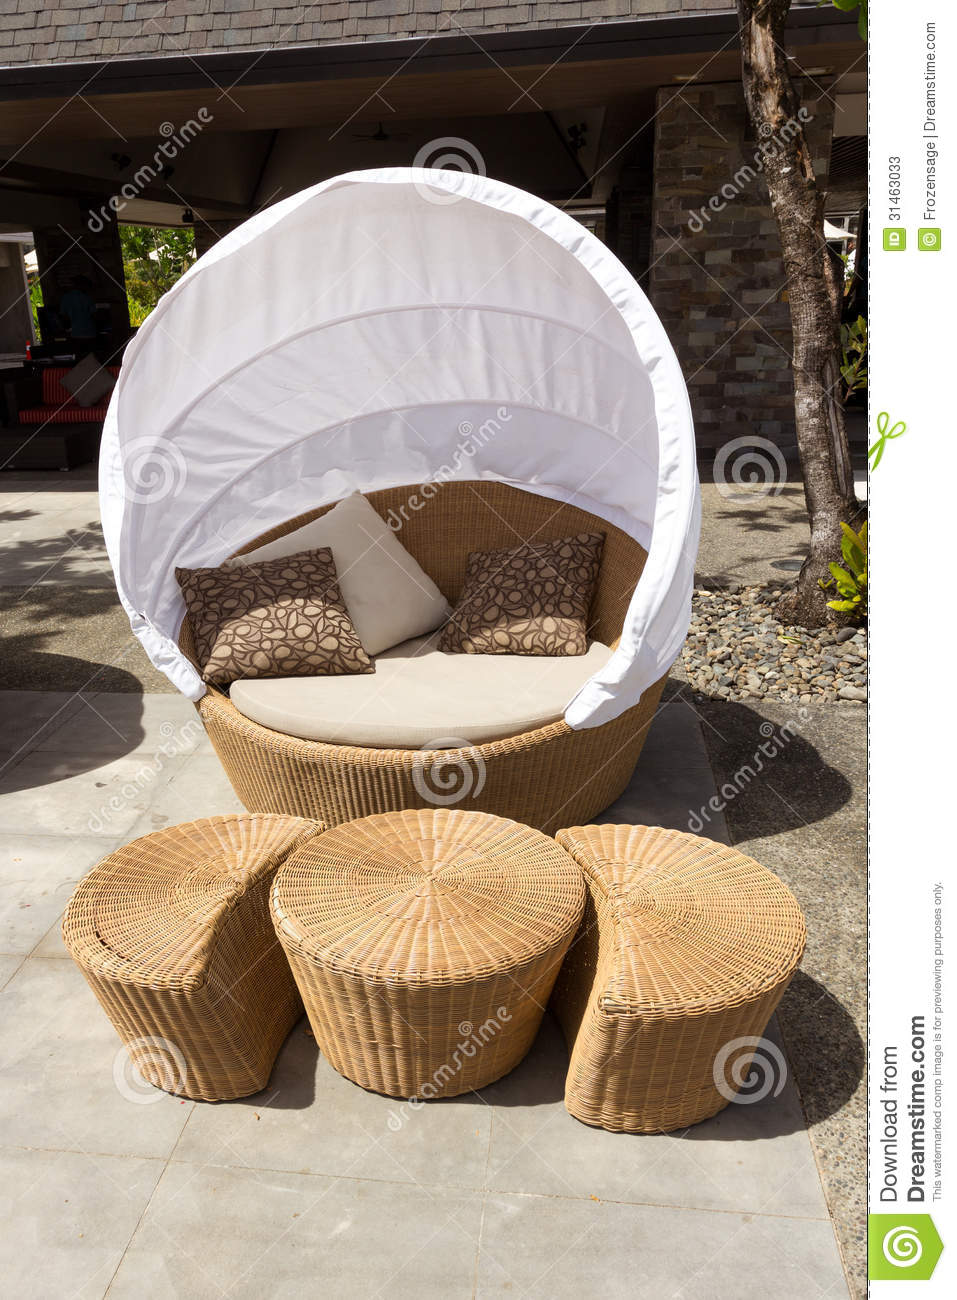 Outdoor Sofa Chair With Cover Stock Photos  Image 31463033